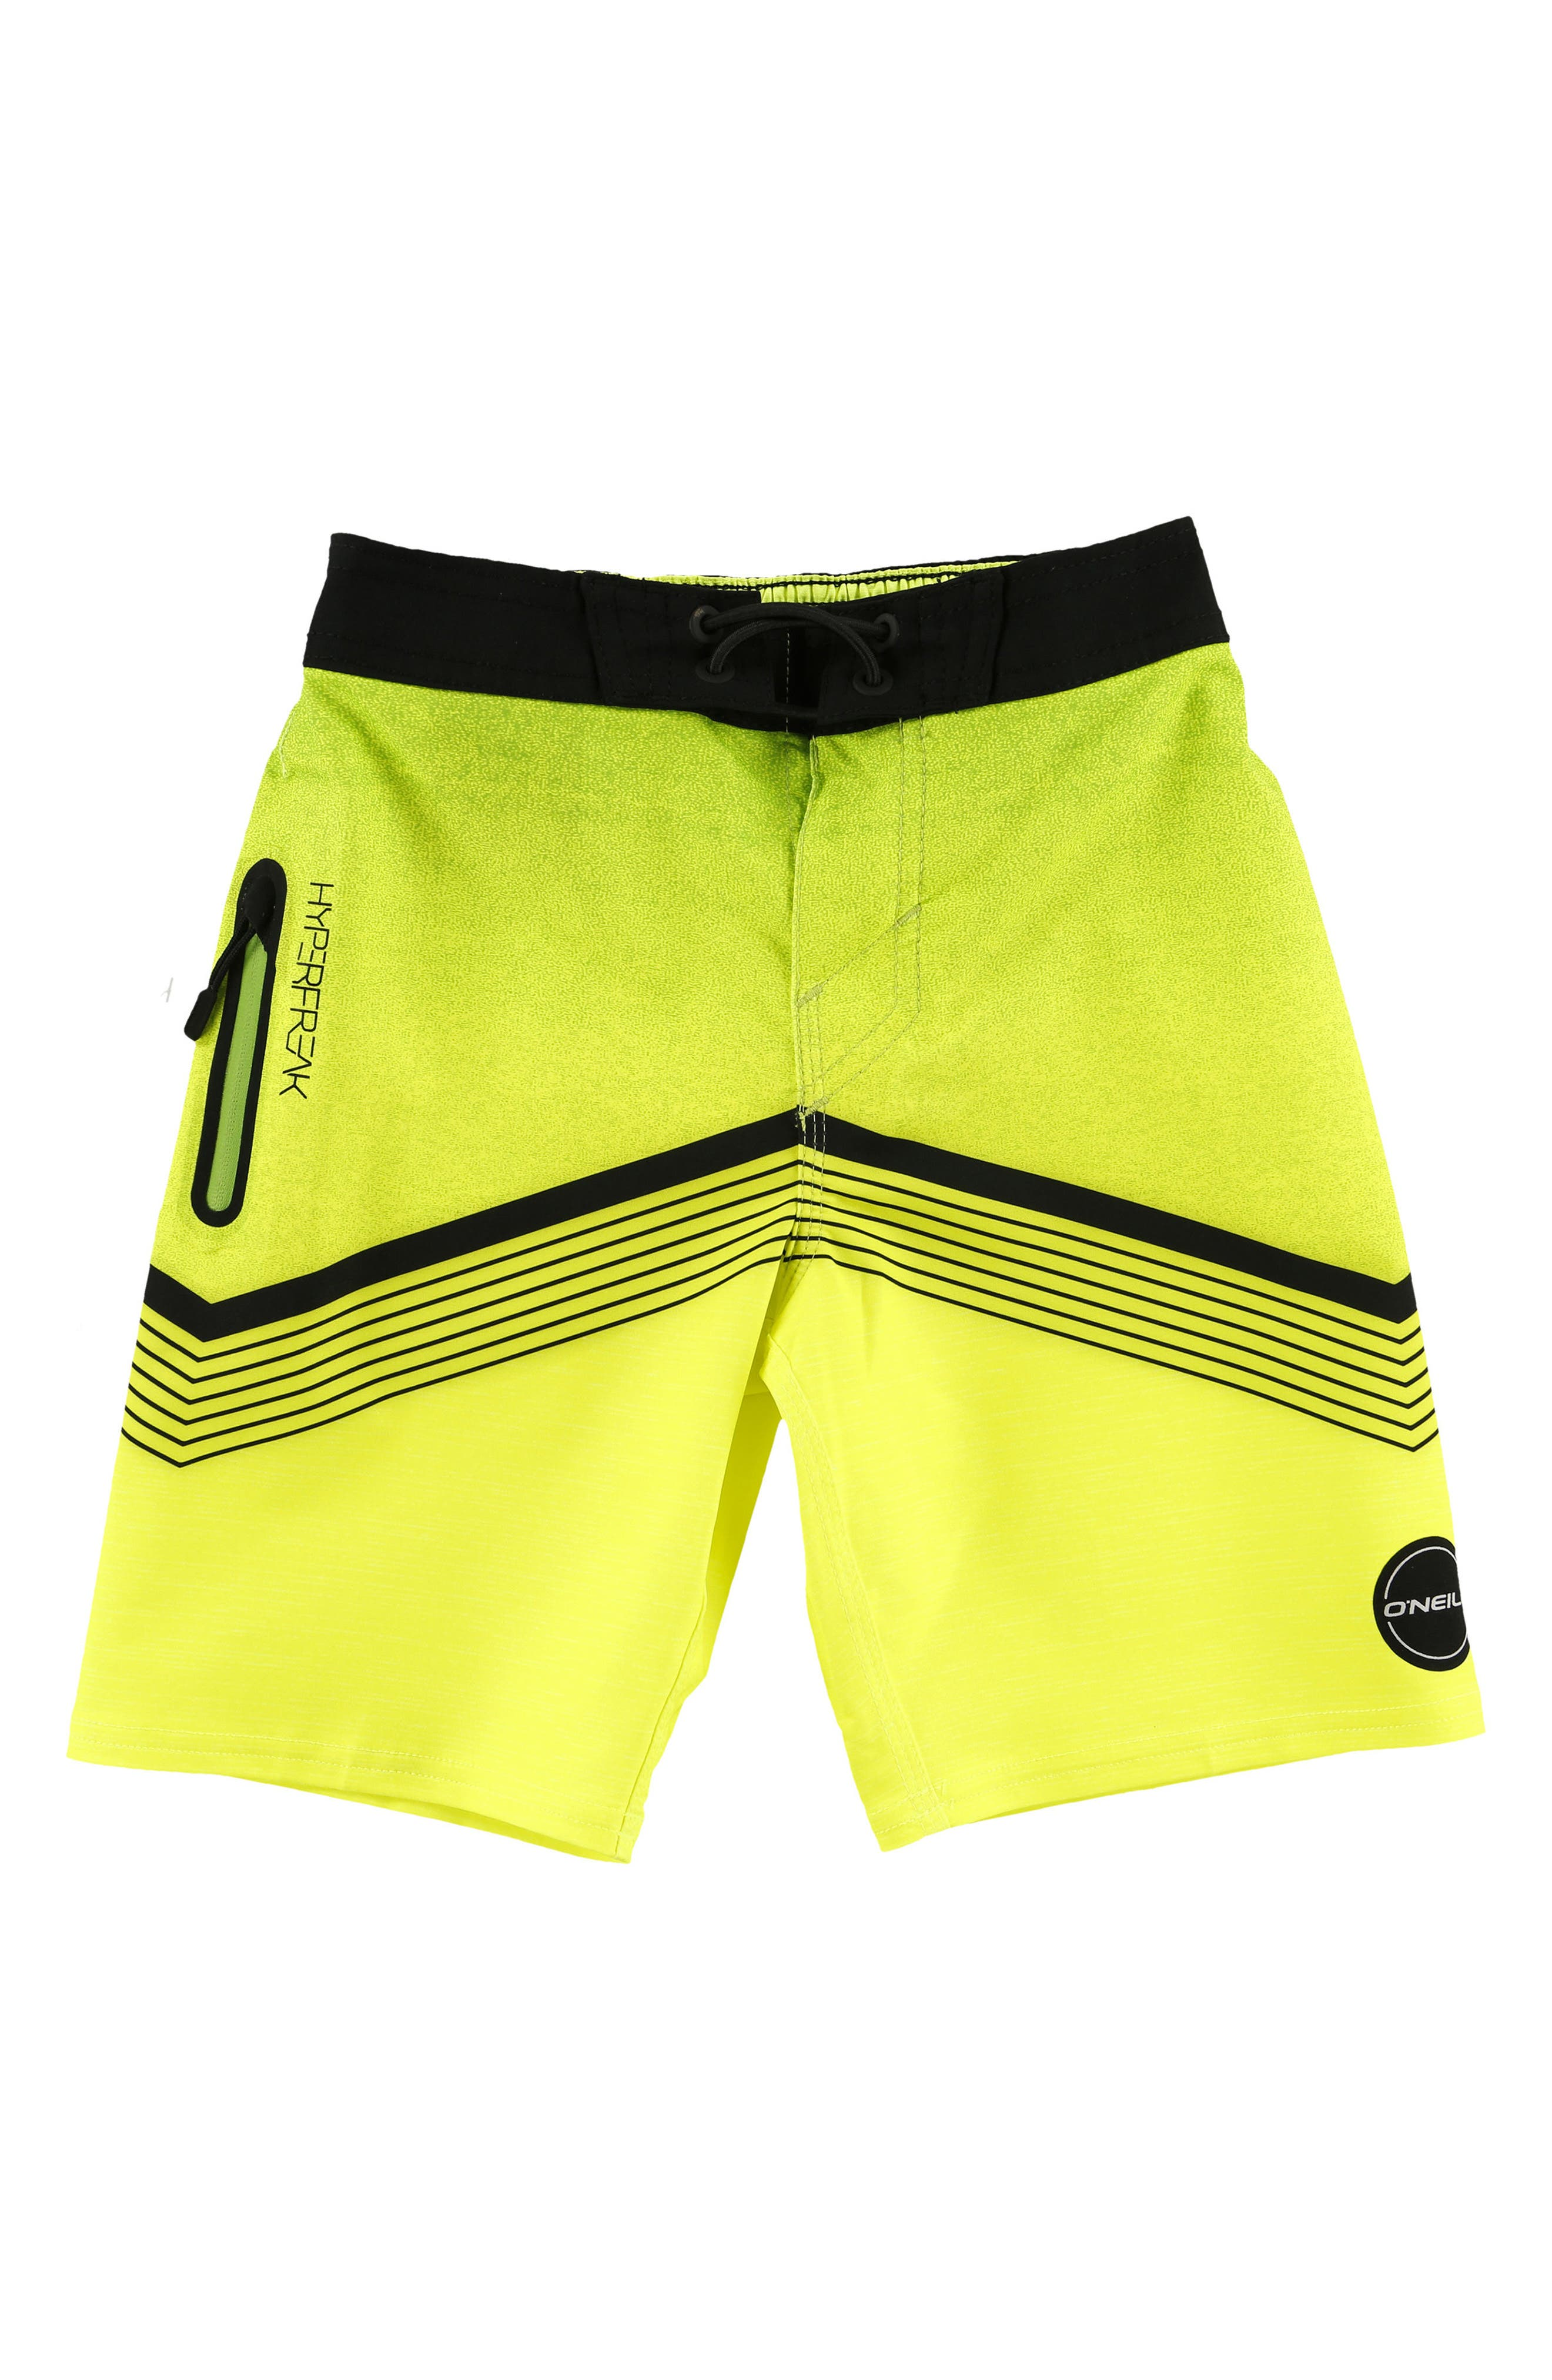 Hyperfreak Stretch Board Shorts,                             Main thumbnail 1, color,                             Neon Green